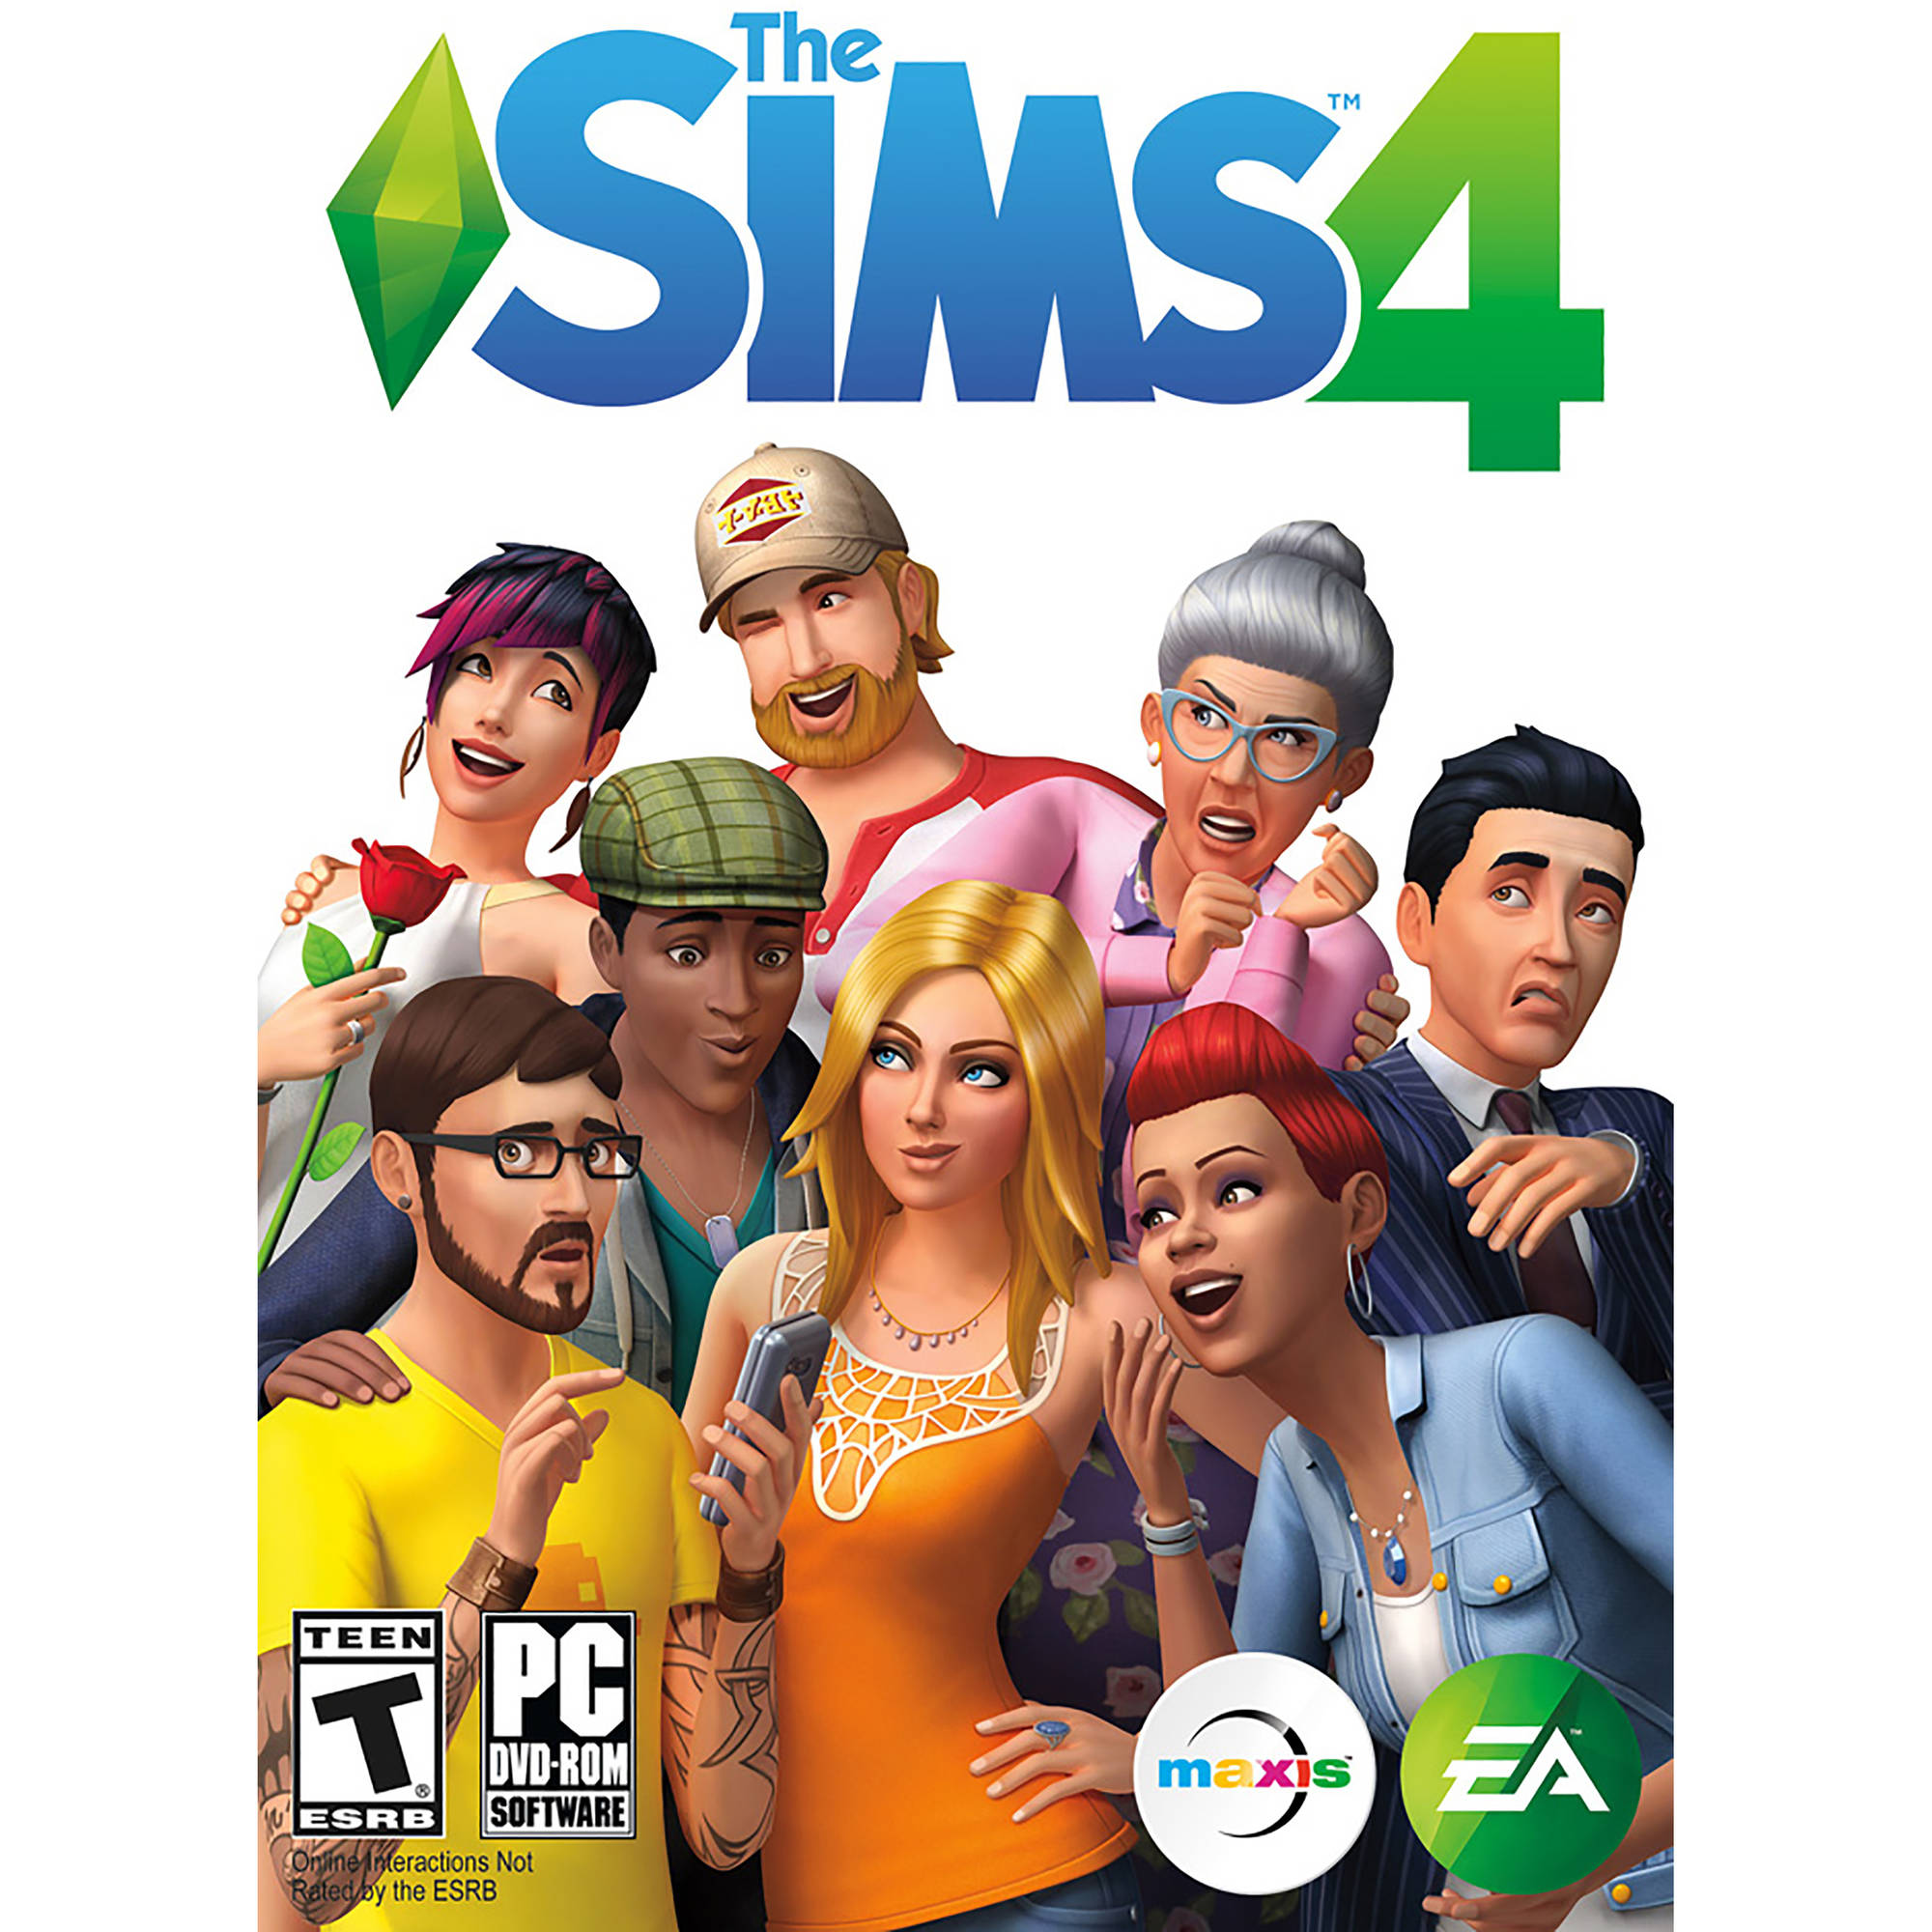 the sims video games on pc xbox playstation nintendo systems